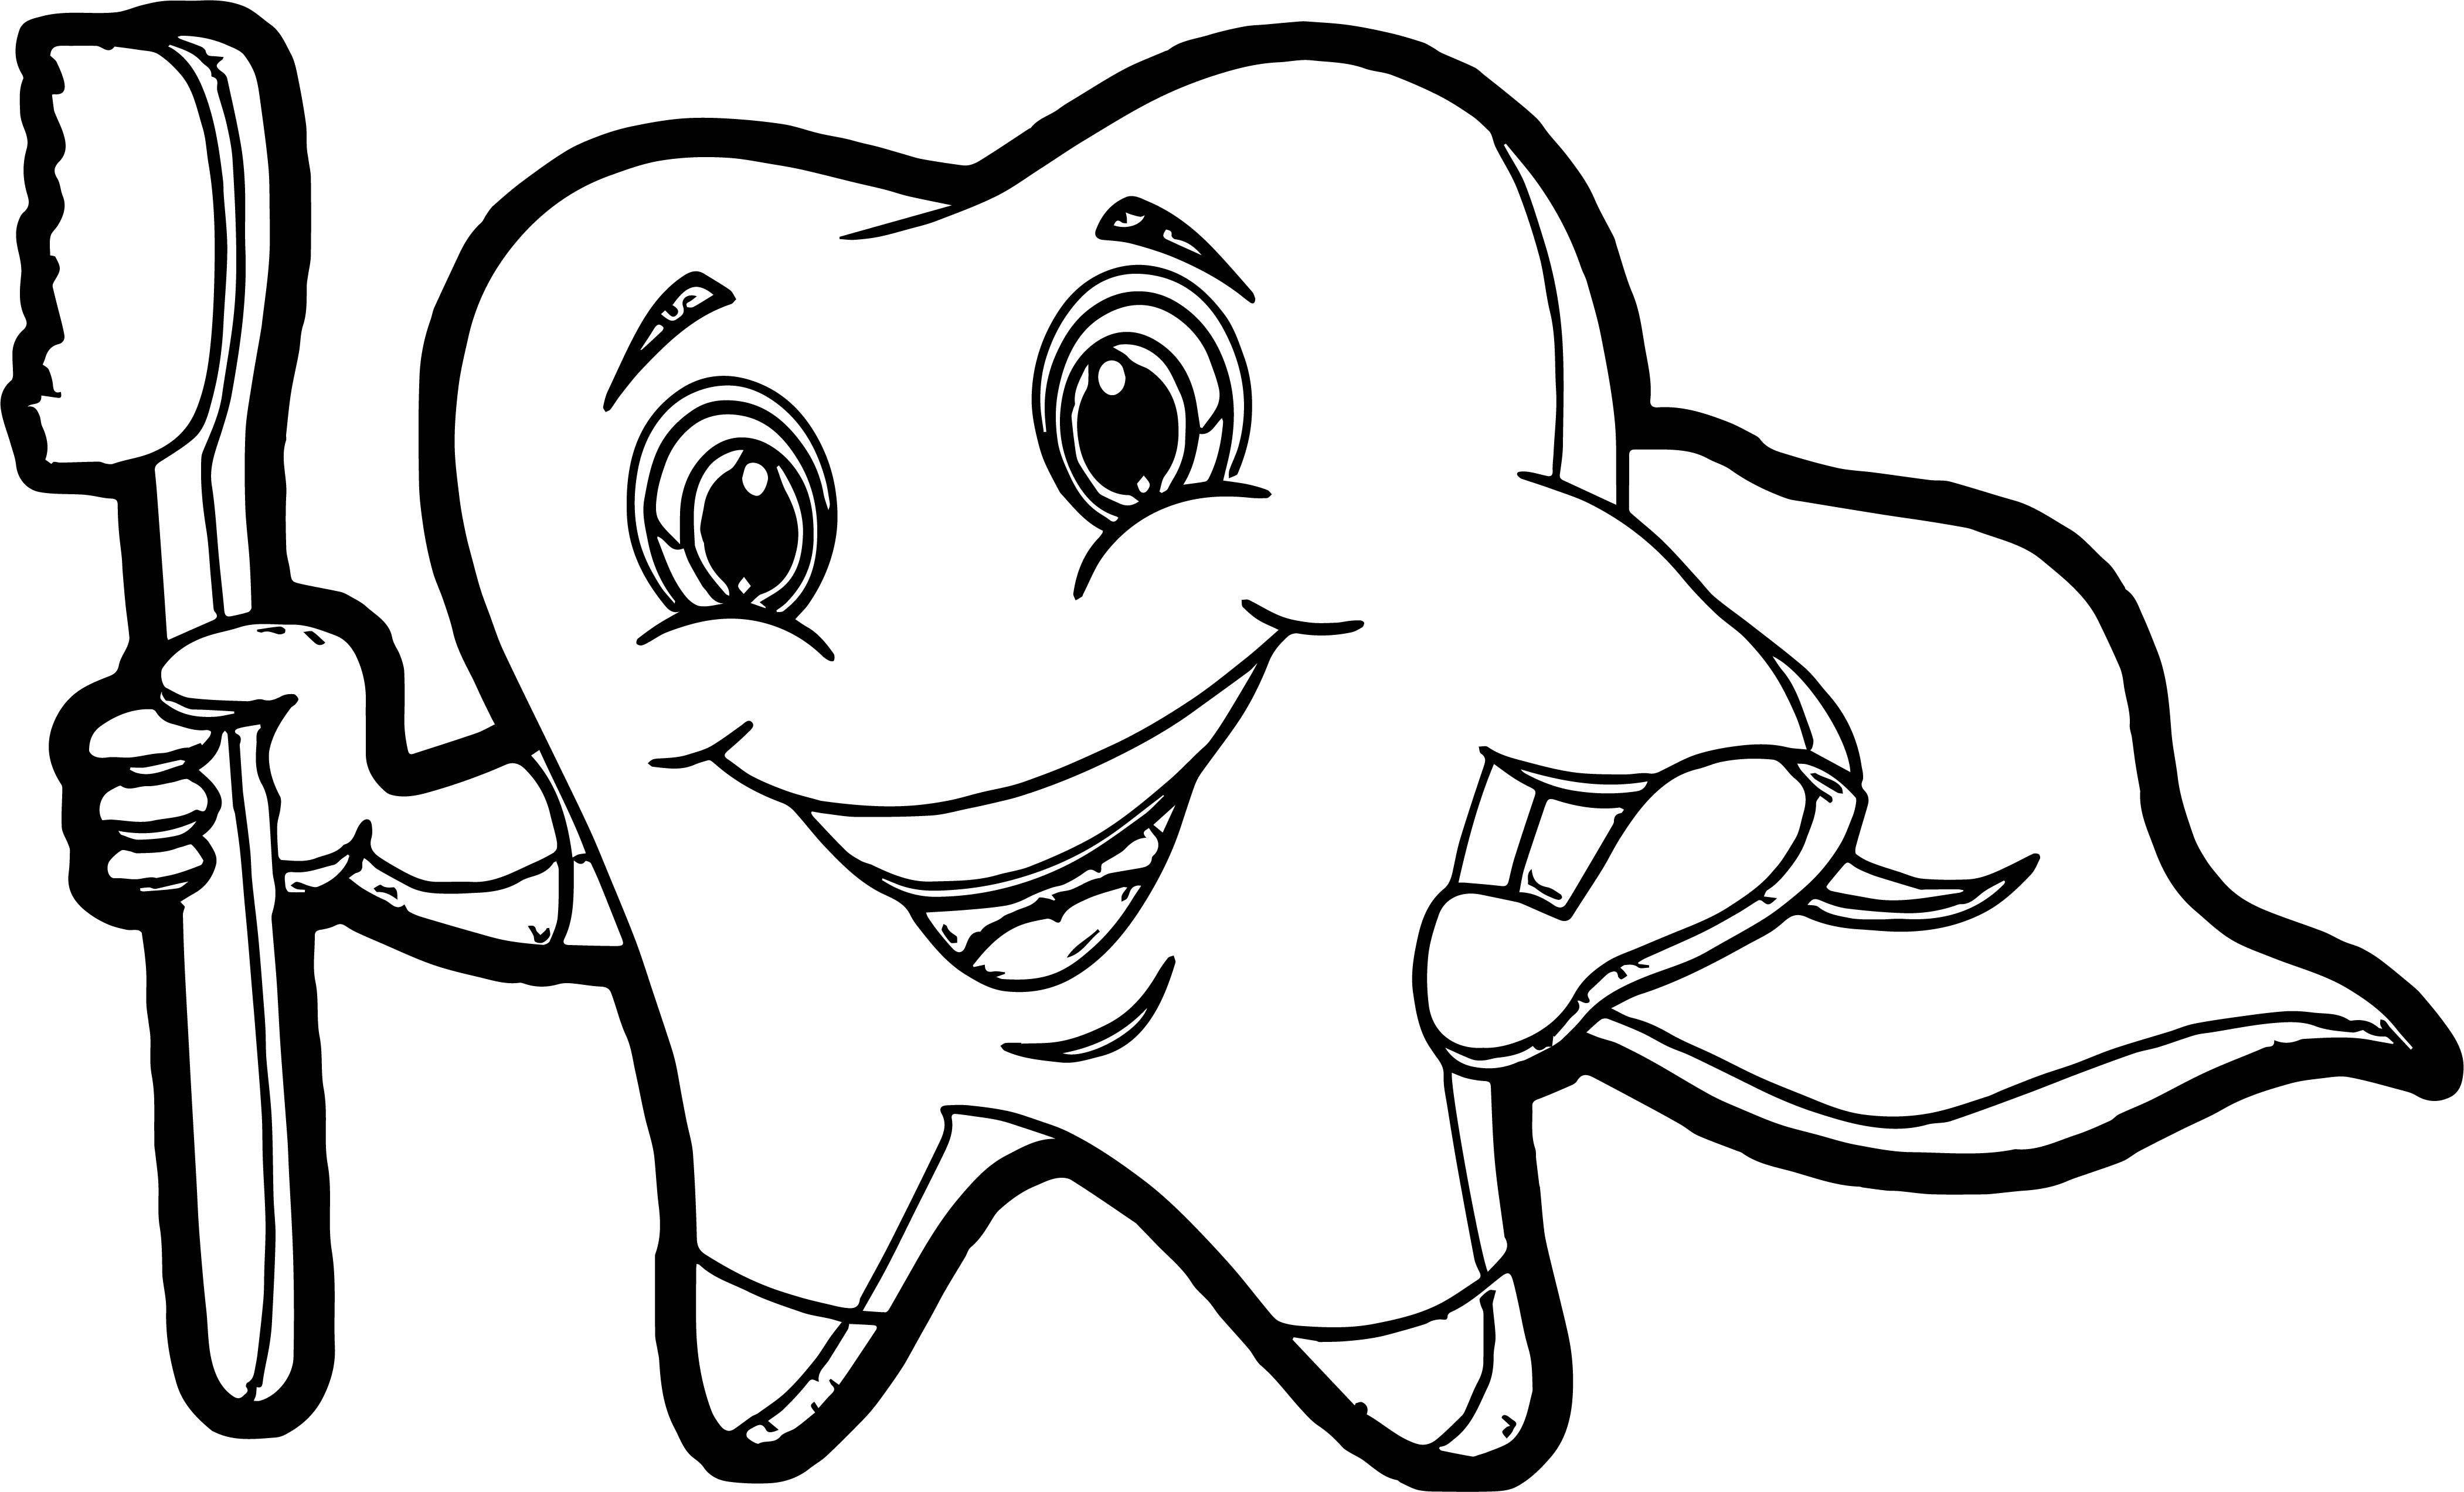 teeth coloring page # 2